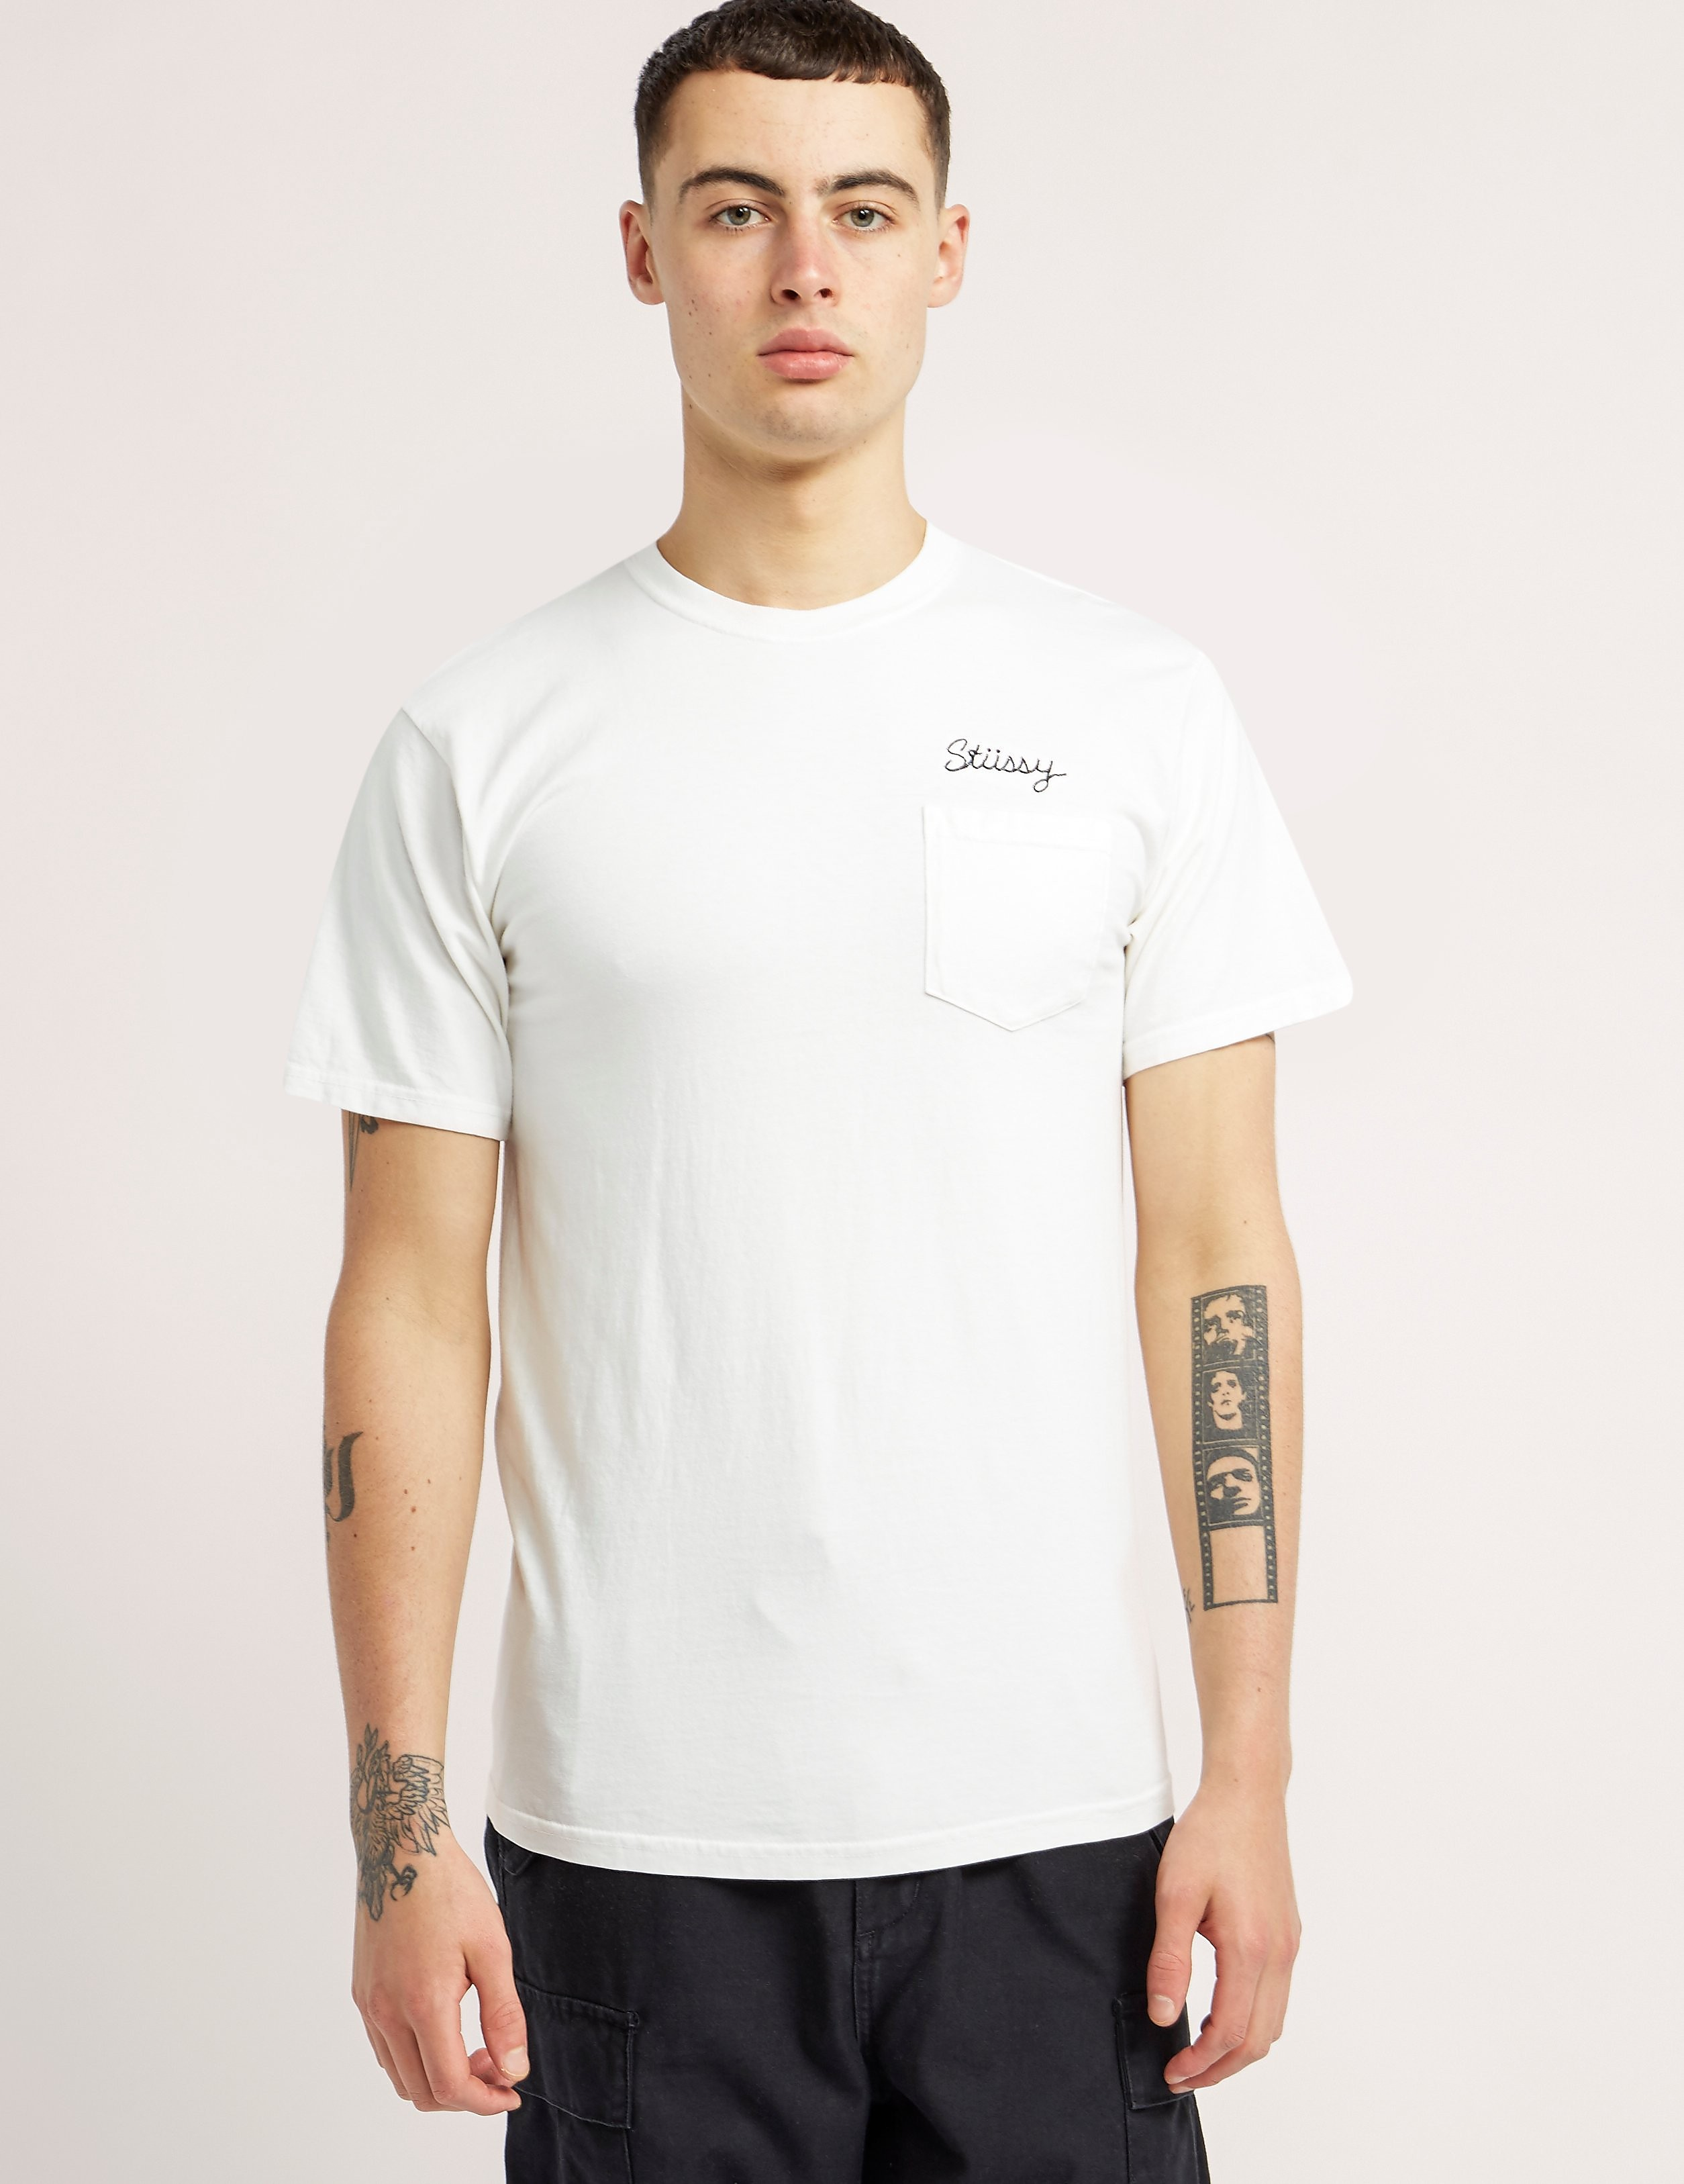 Stussy Stitch Dye Pocket T-Shirt